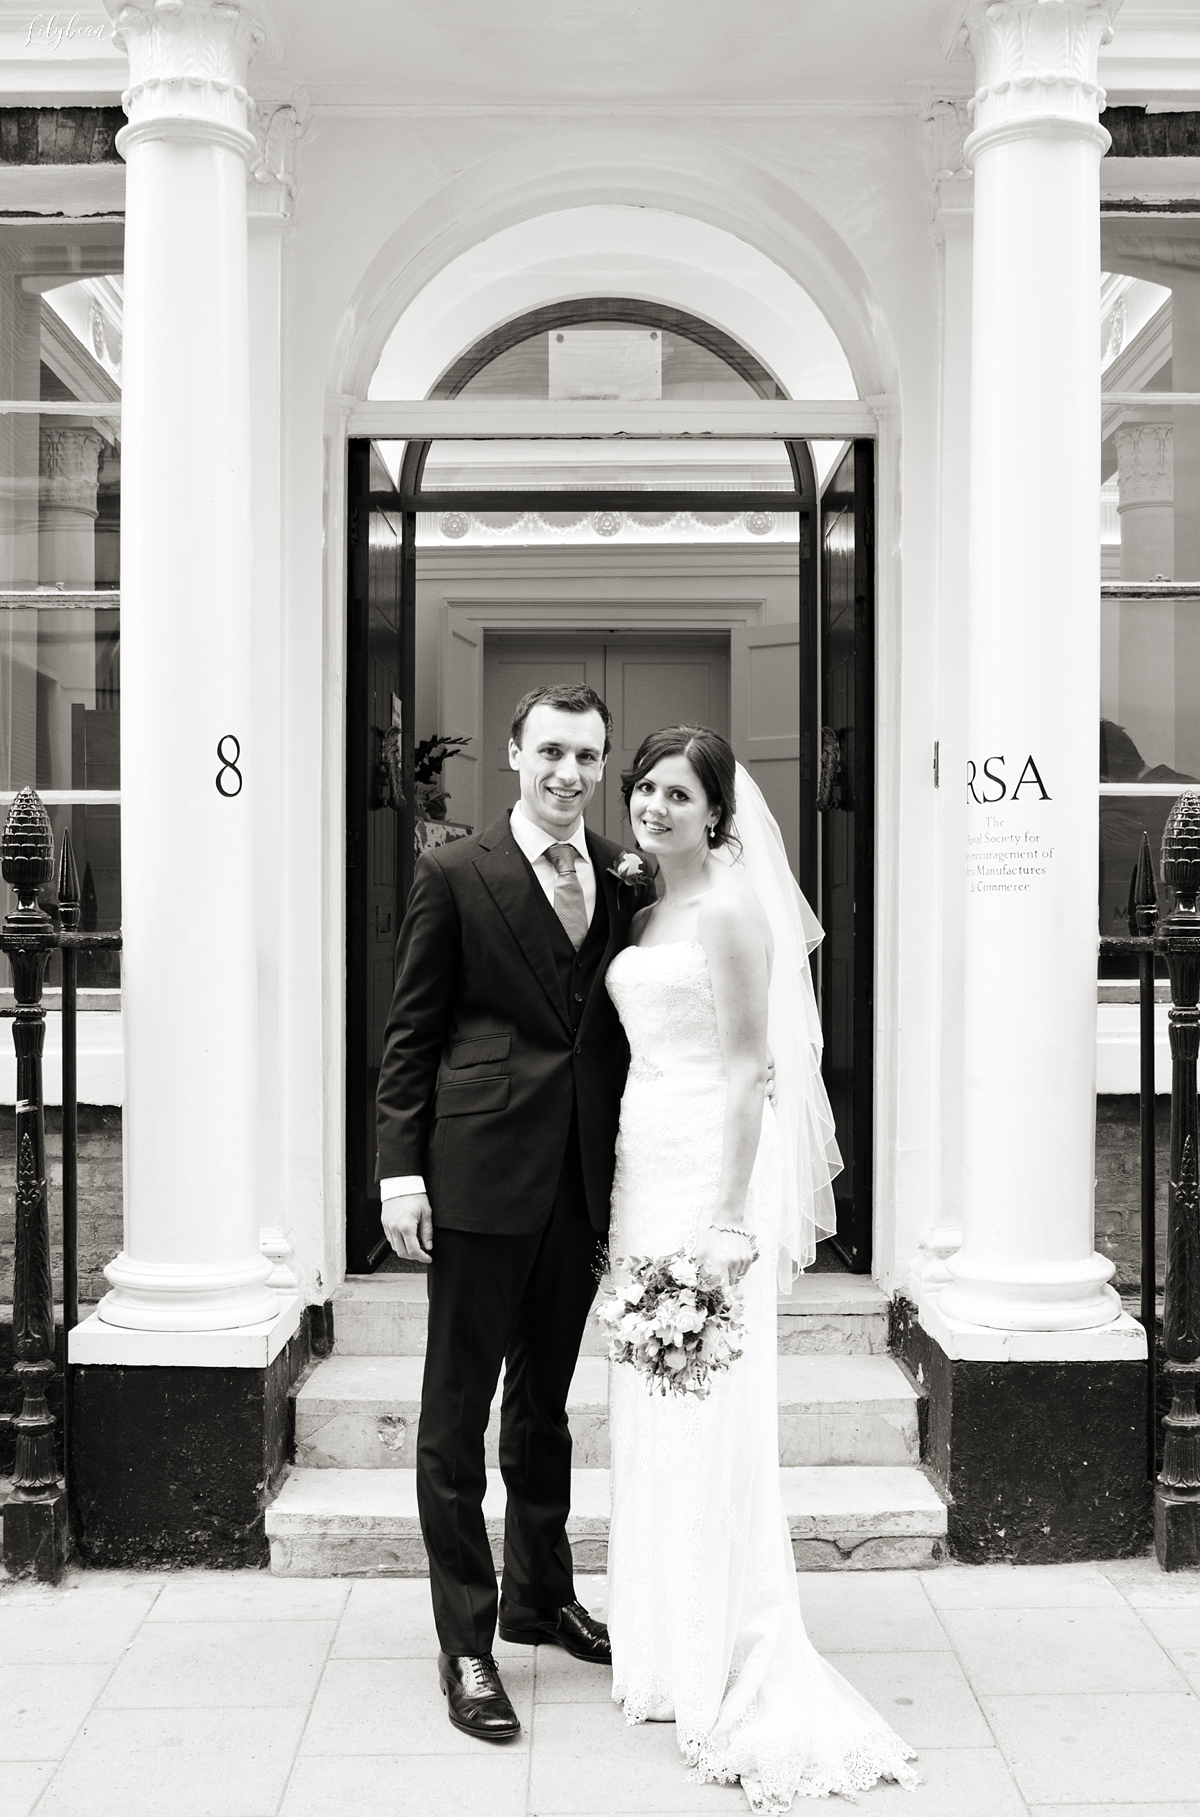 Bride & Groom at RSA House